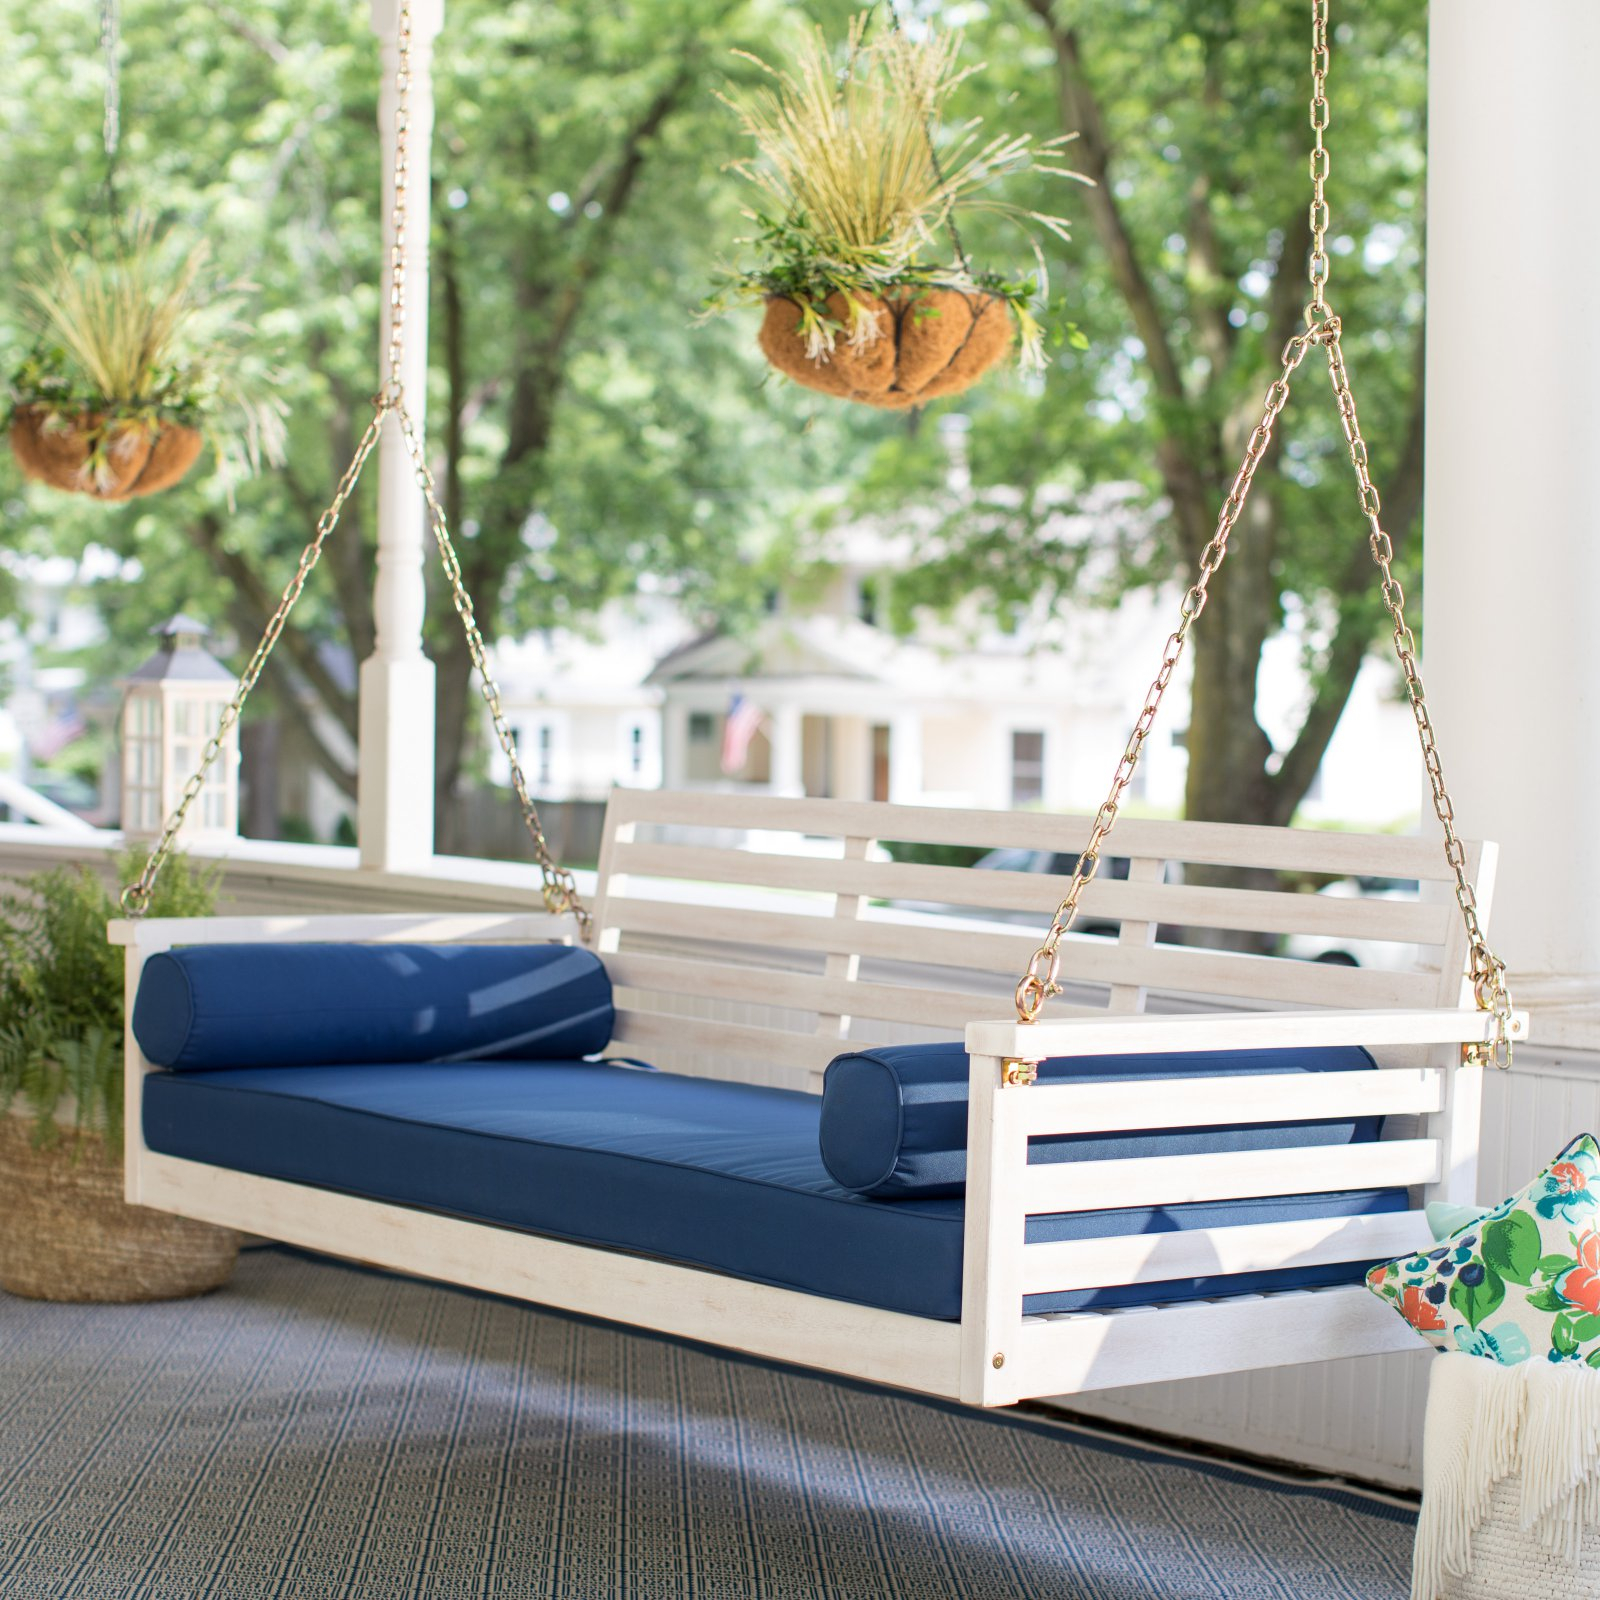 Belham Living Brighton Beach Deep Seating Porch Swing Bed With Regard To Nautical Porch Swings (View 10 of 25)